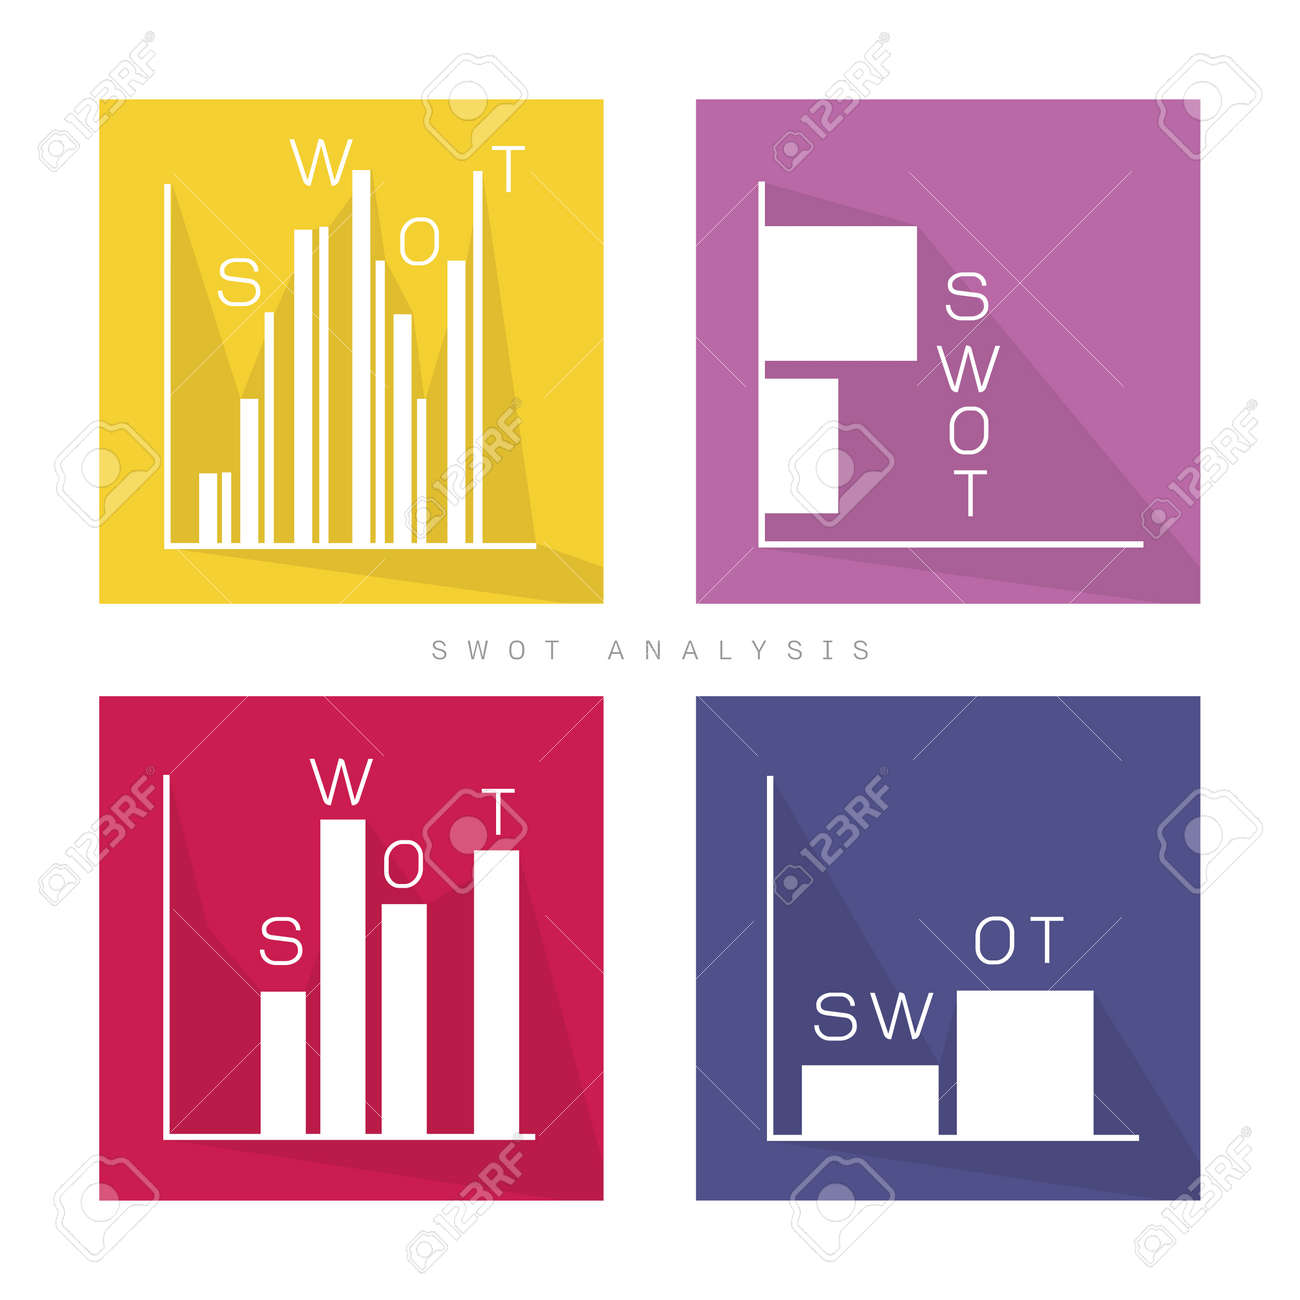 Business bar chart of swot analysis matrix a structured planning business bar chart of swot analysis matrix a structured planning method for evaluate strengths weaknesses ccuart Choice Image